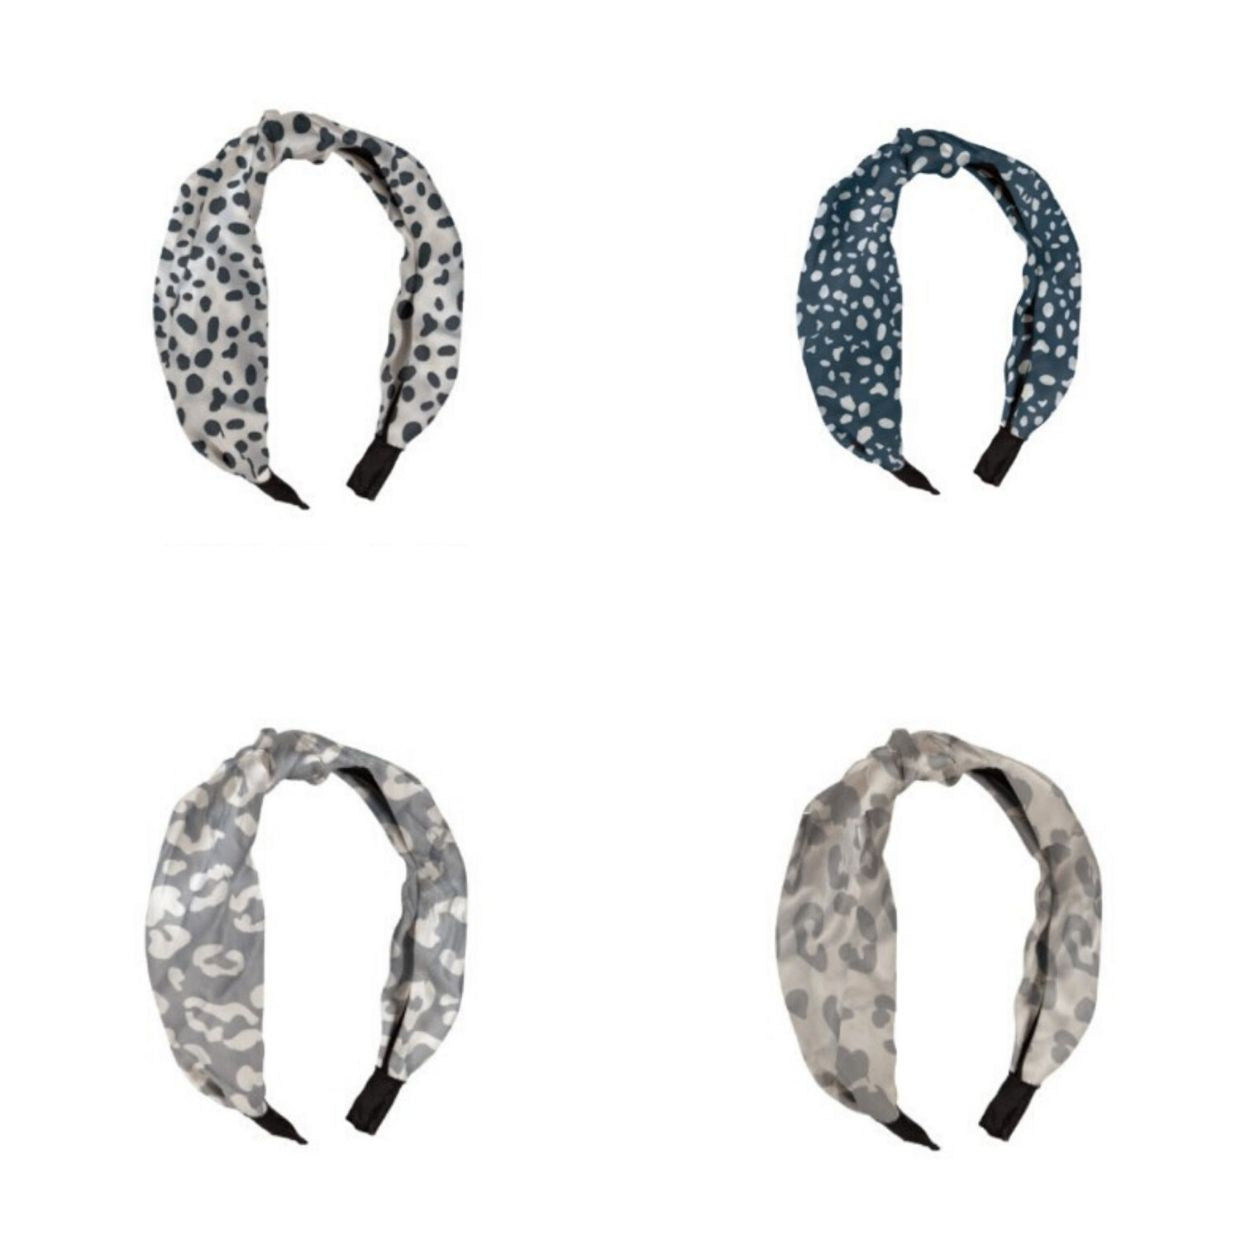 Mary Square Top Knot Hair Band Wide Boho Headband For Women And Girls Timely Buys